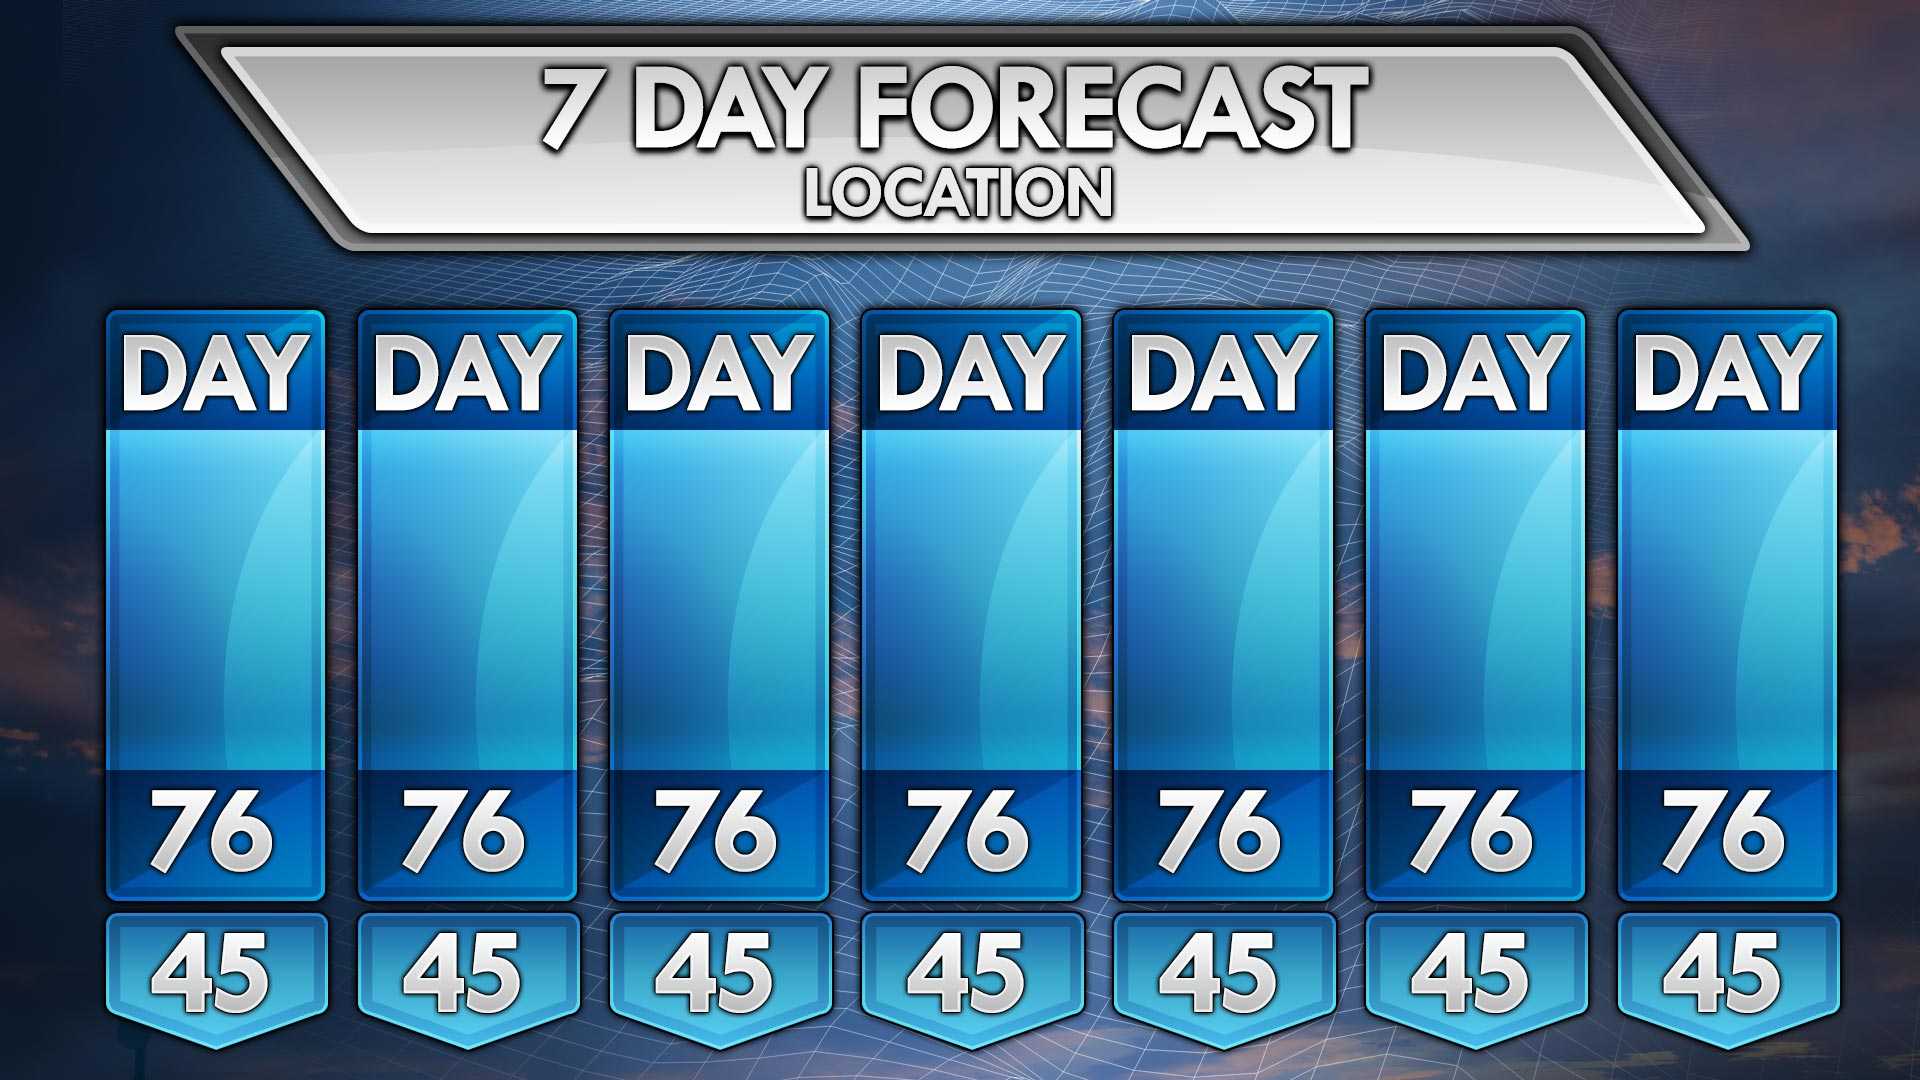 Create Your Own Weather Map.Forecast Templates Weather Forecast Graphics Metgraphics Net